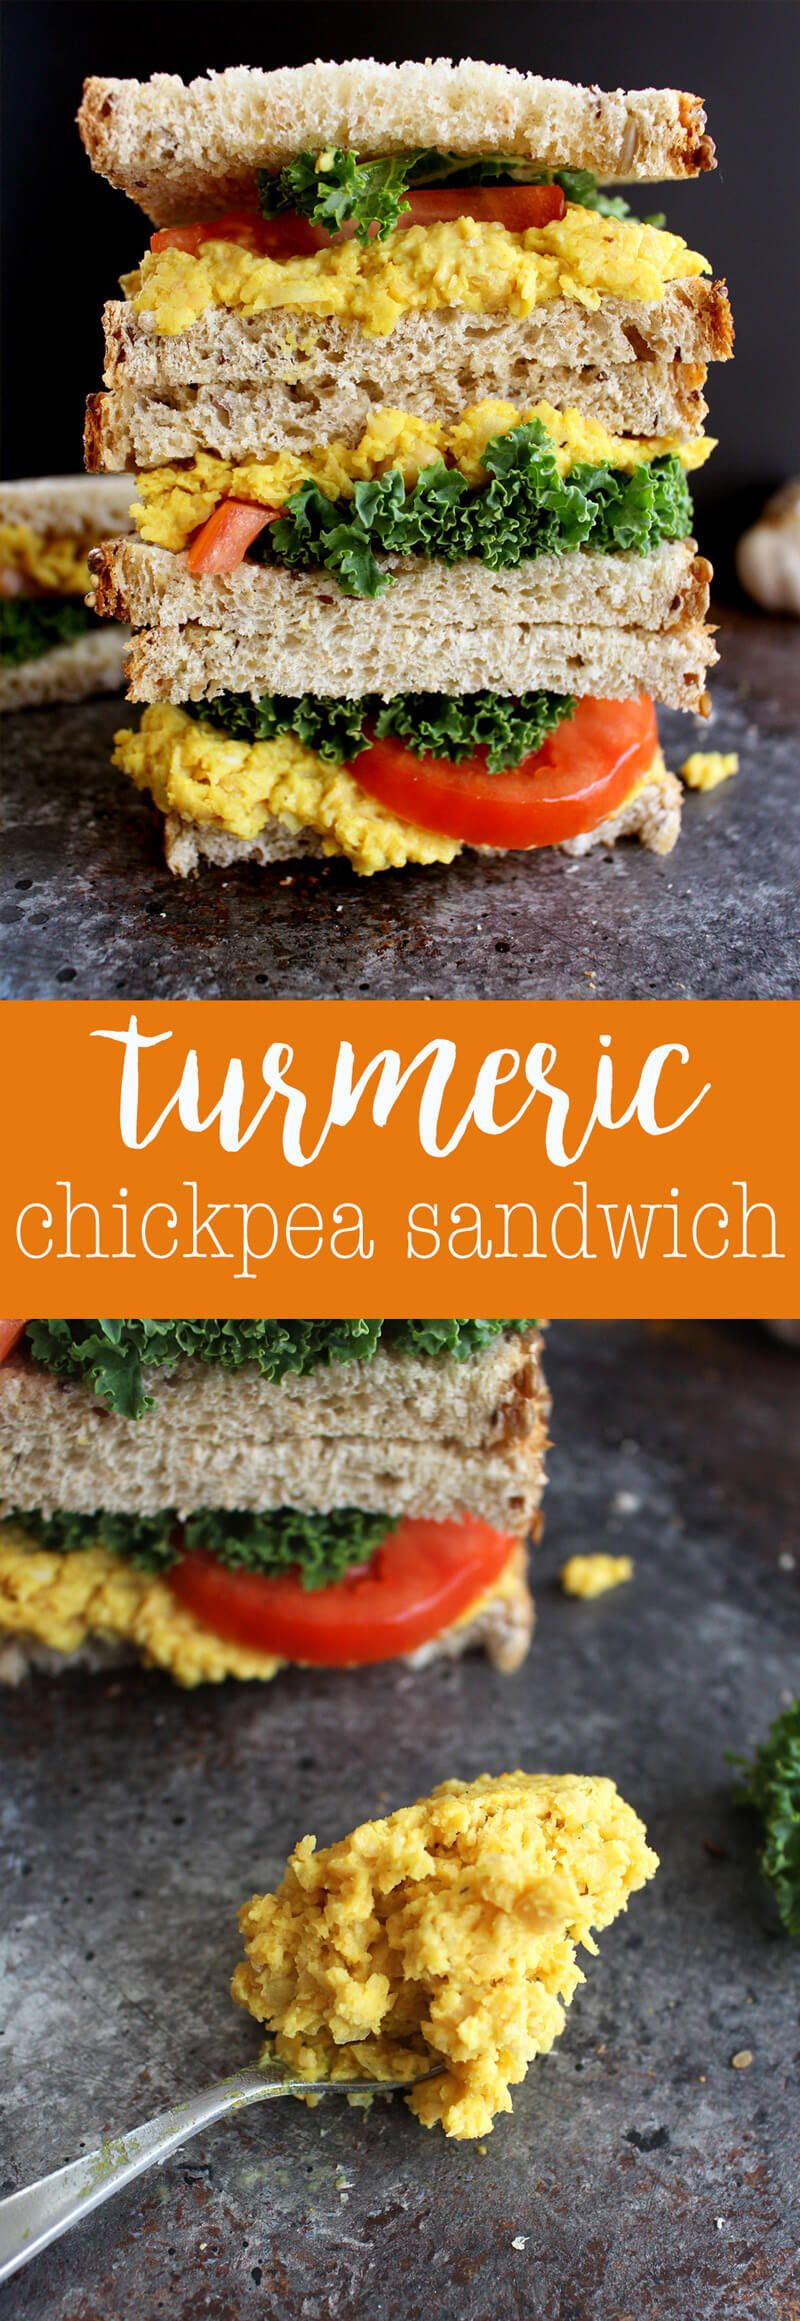 Photo of Easy Vegan Turmeric Chickpea Salad Sandwich